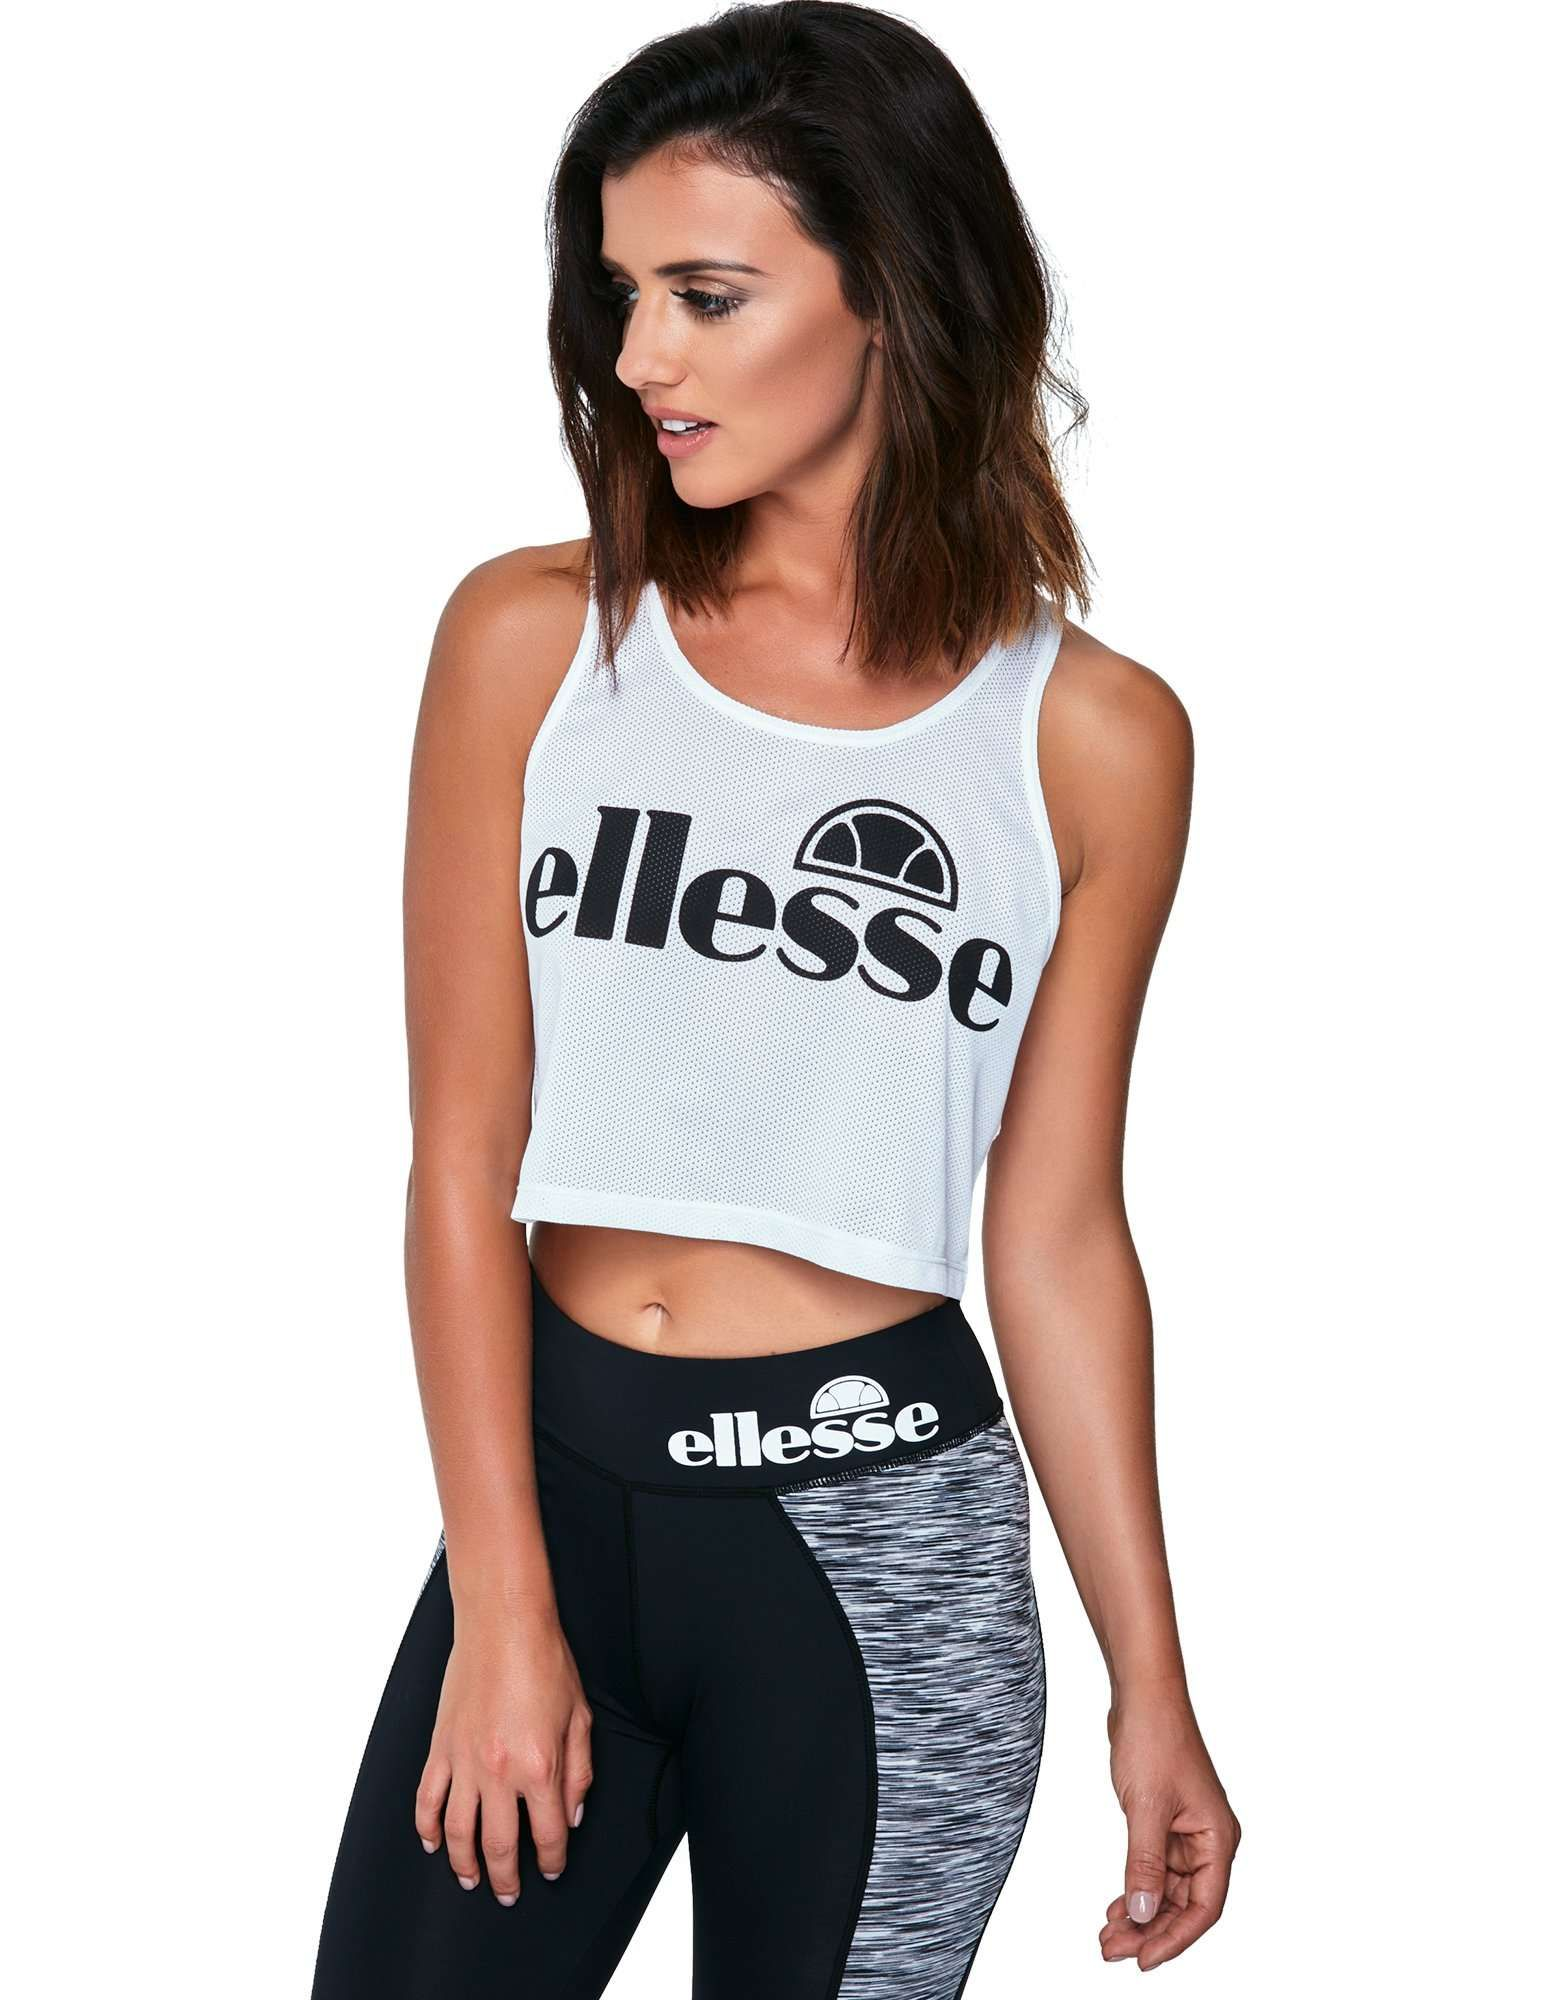 Ellesse Pecci Tank Top  - Womens Vests